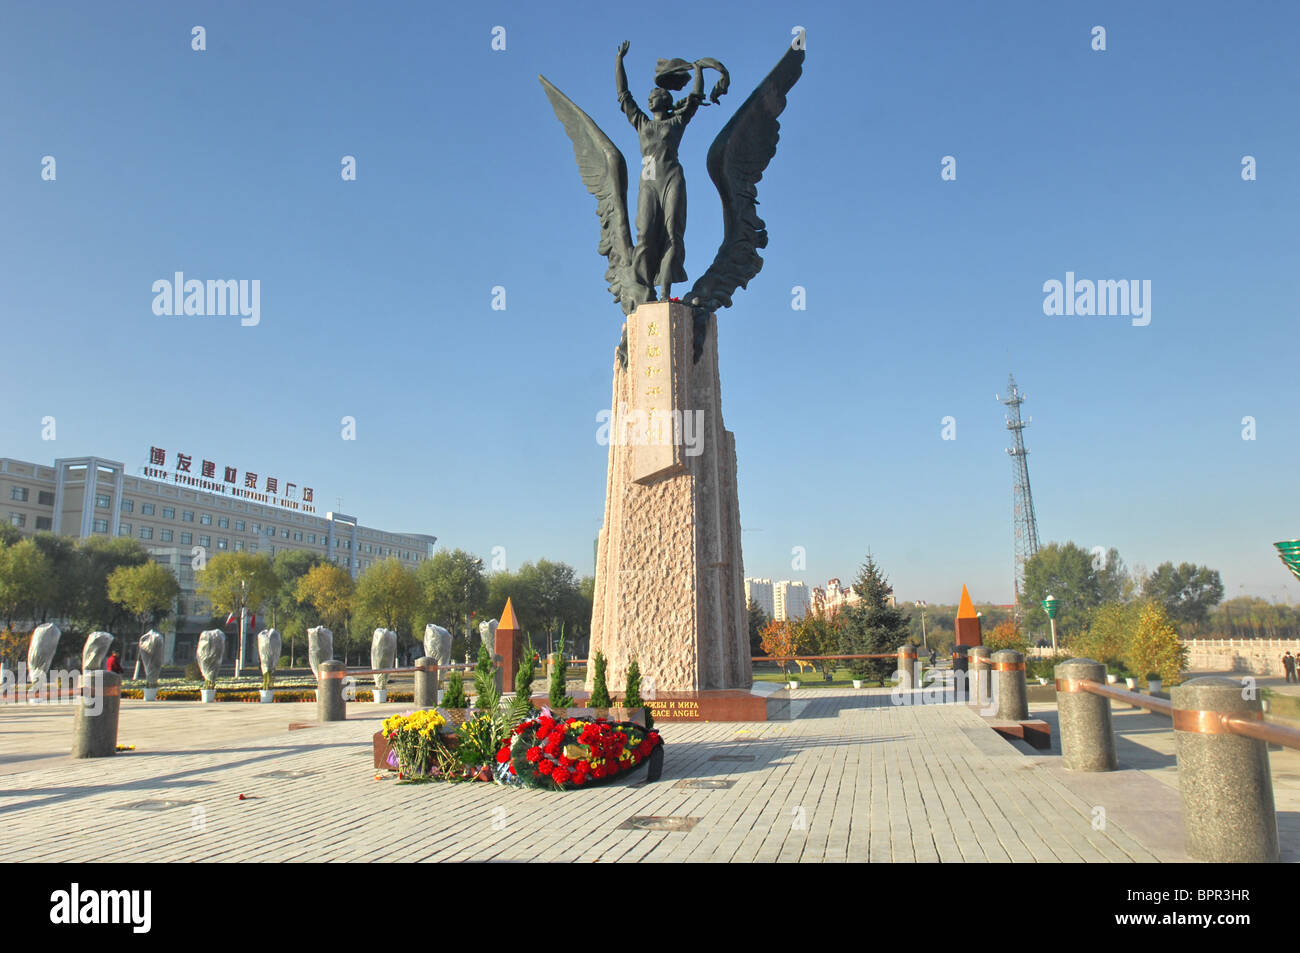 Monument to female spy unveiled in Suifenhe city, China - Stock Image